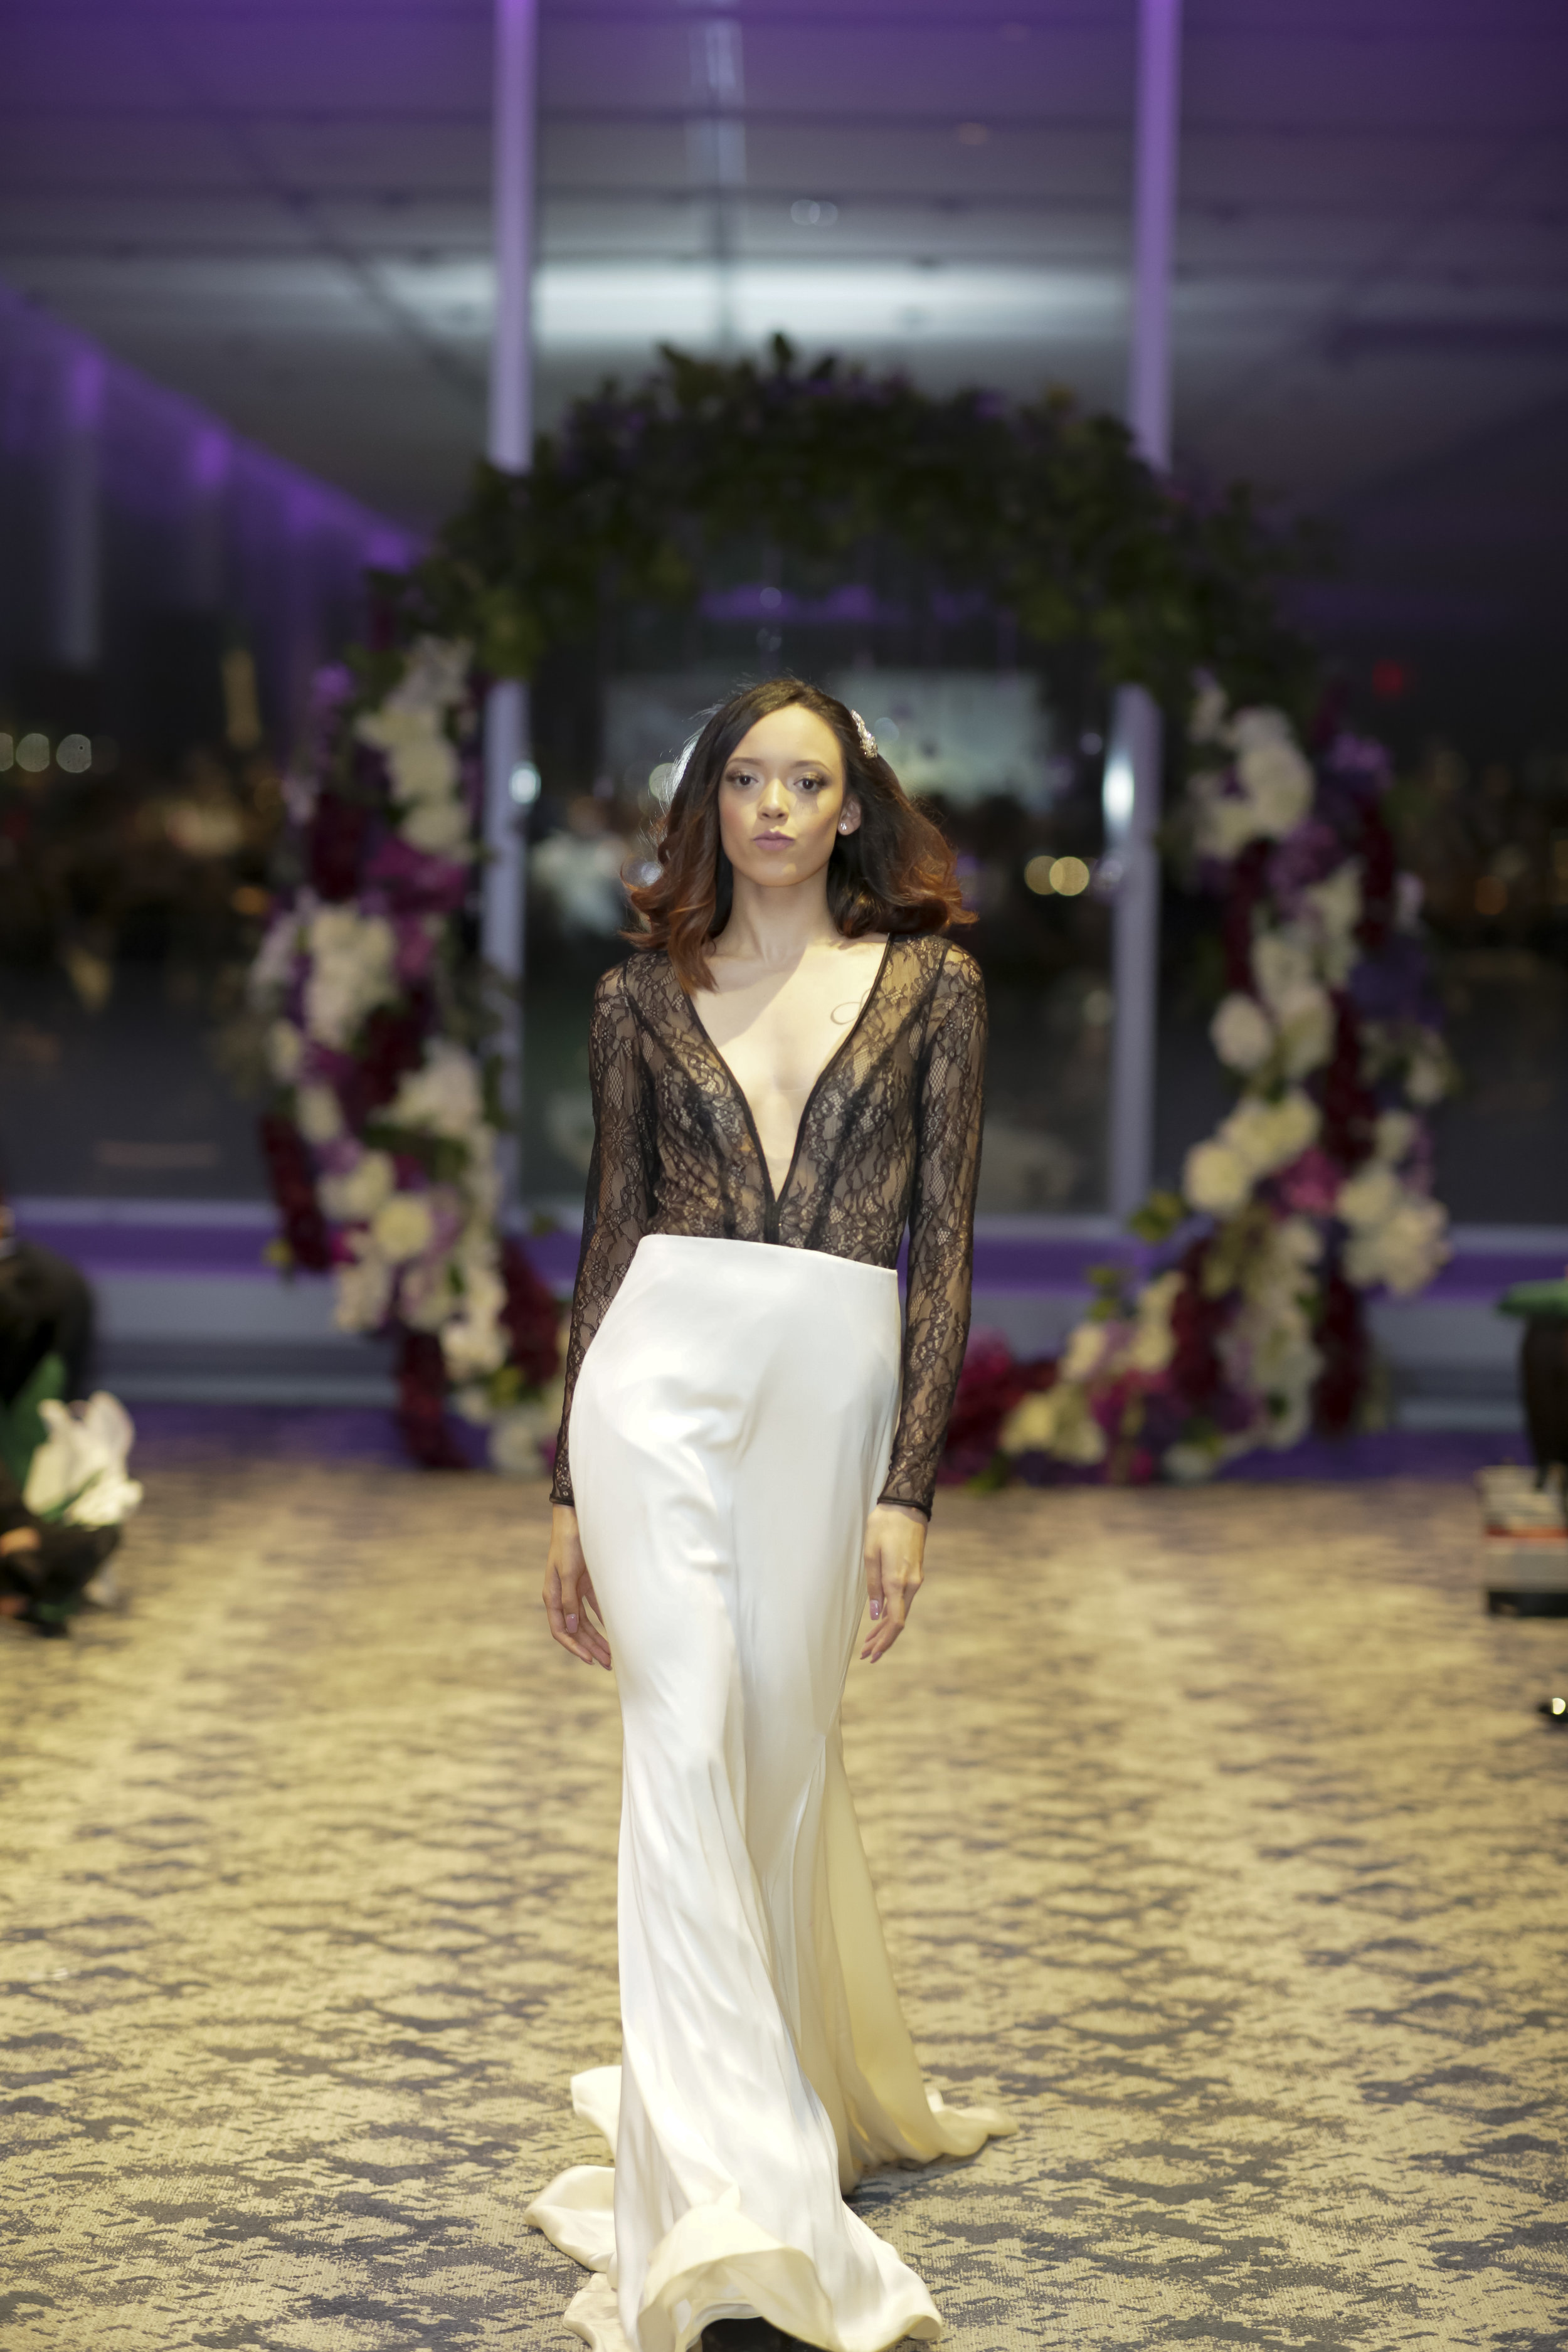 dc-fashion-show-andrew-roby-events